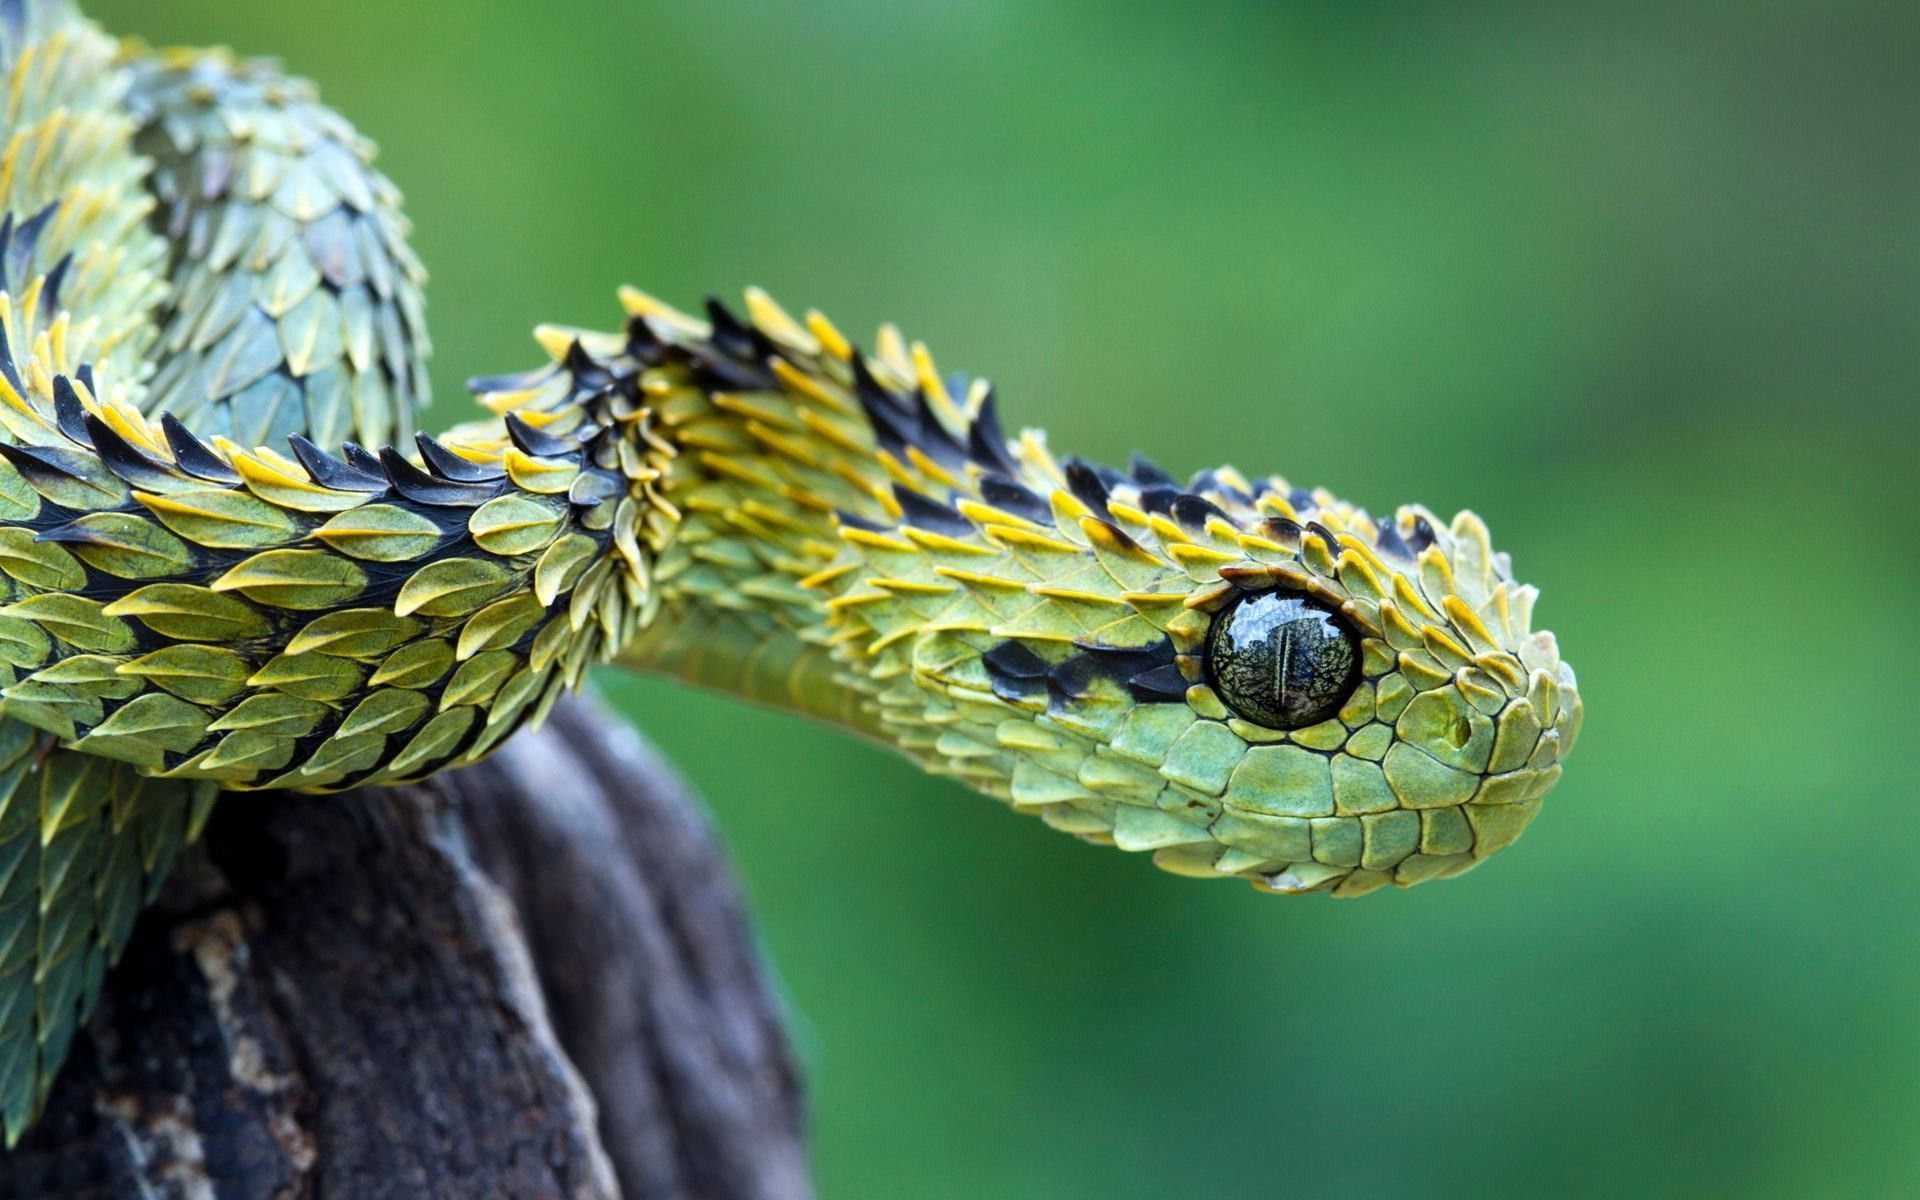 snake wallpapers android apps on google play 1920×1080 snake